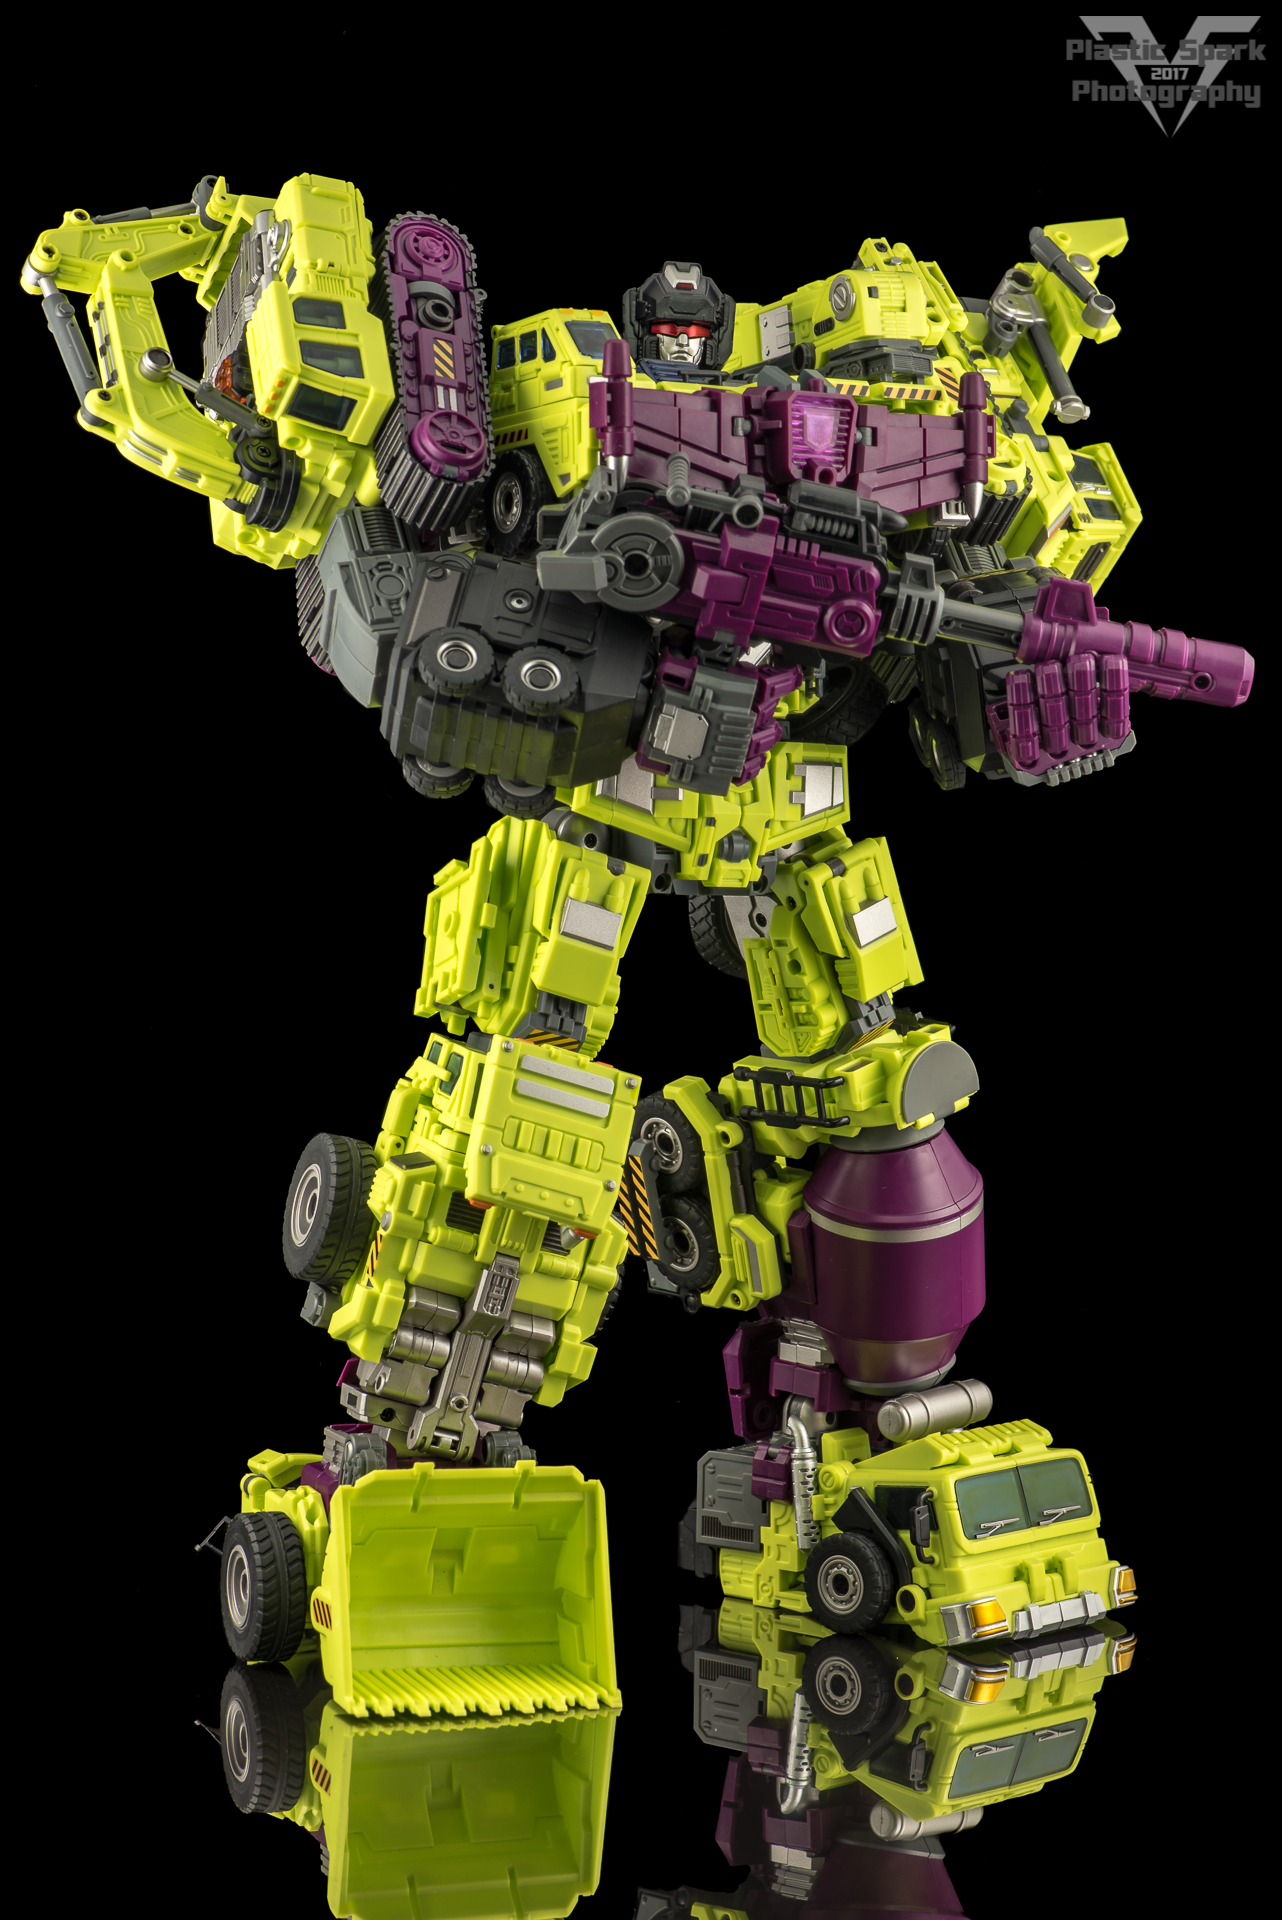 Generation-Toy-Gravity-Builder-(22-of-34).png